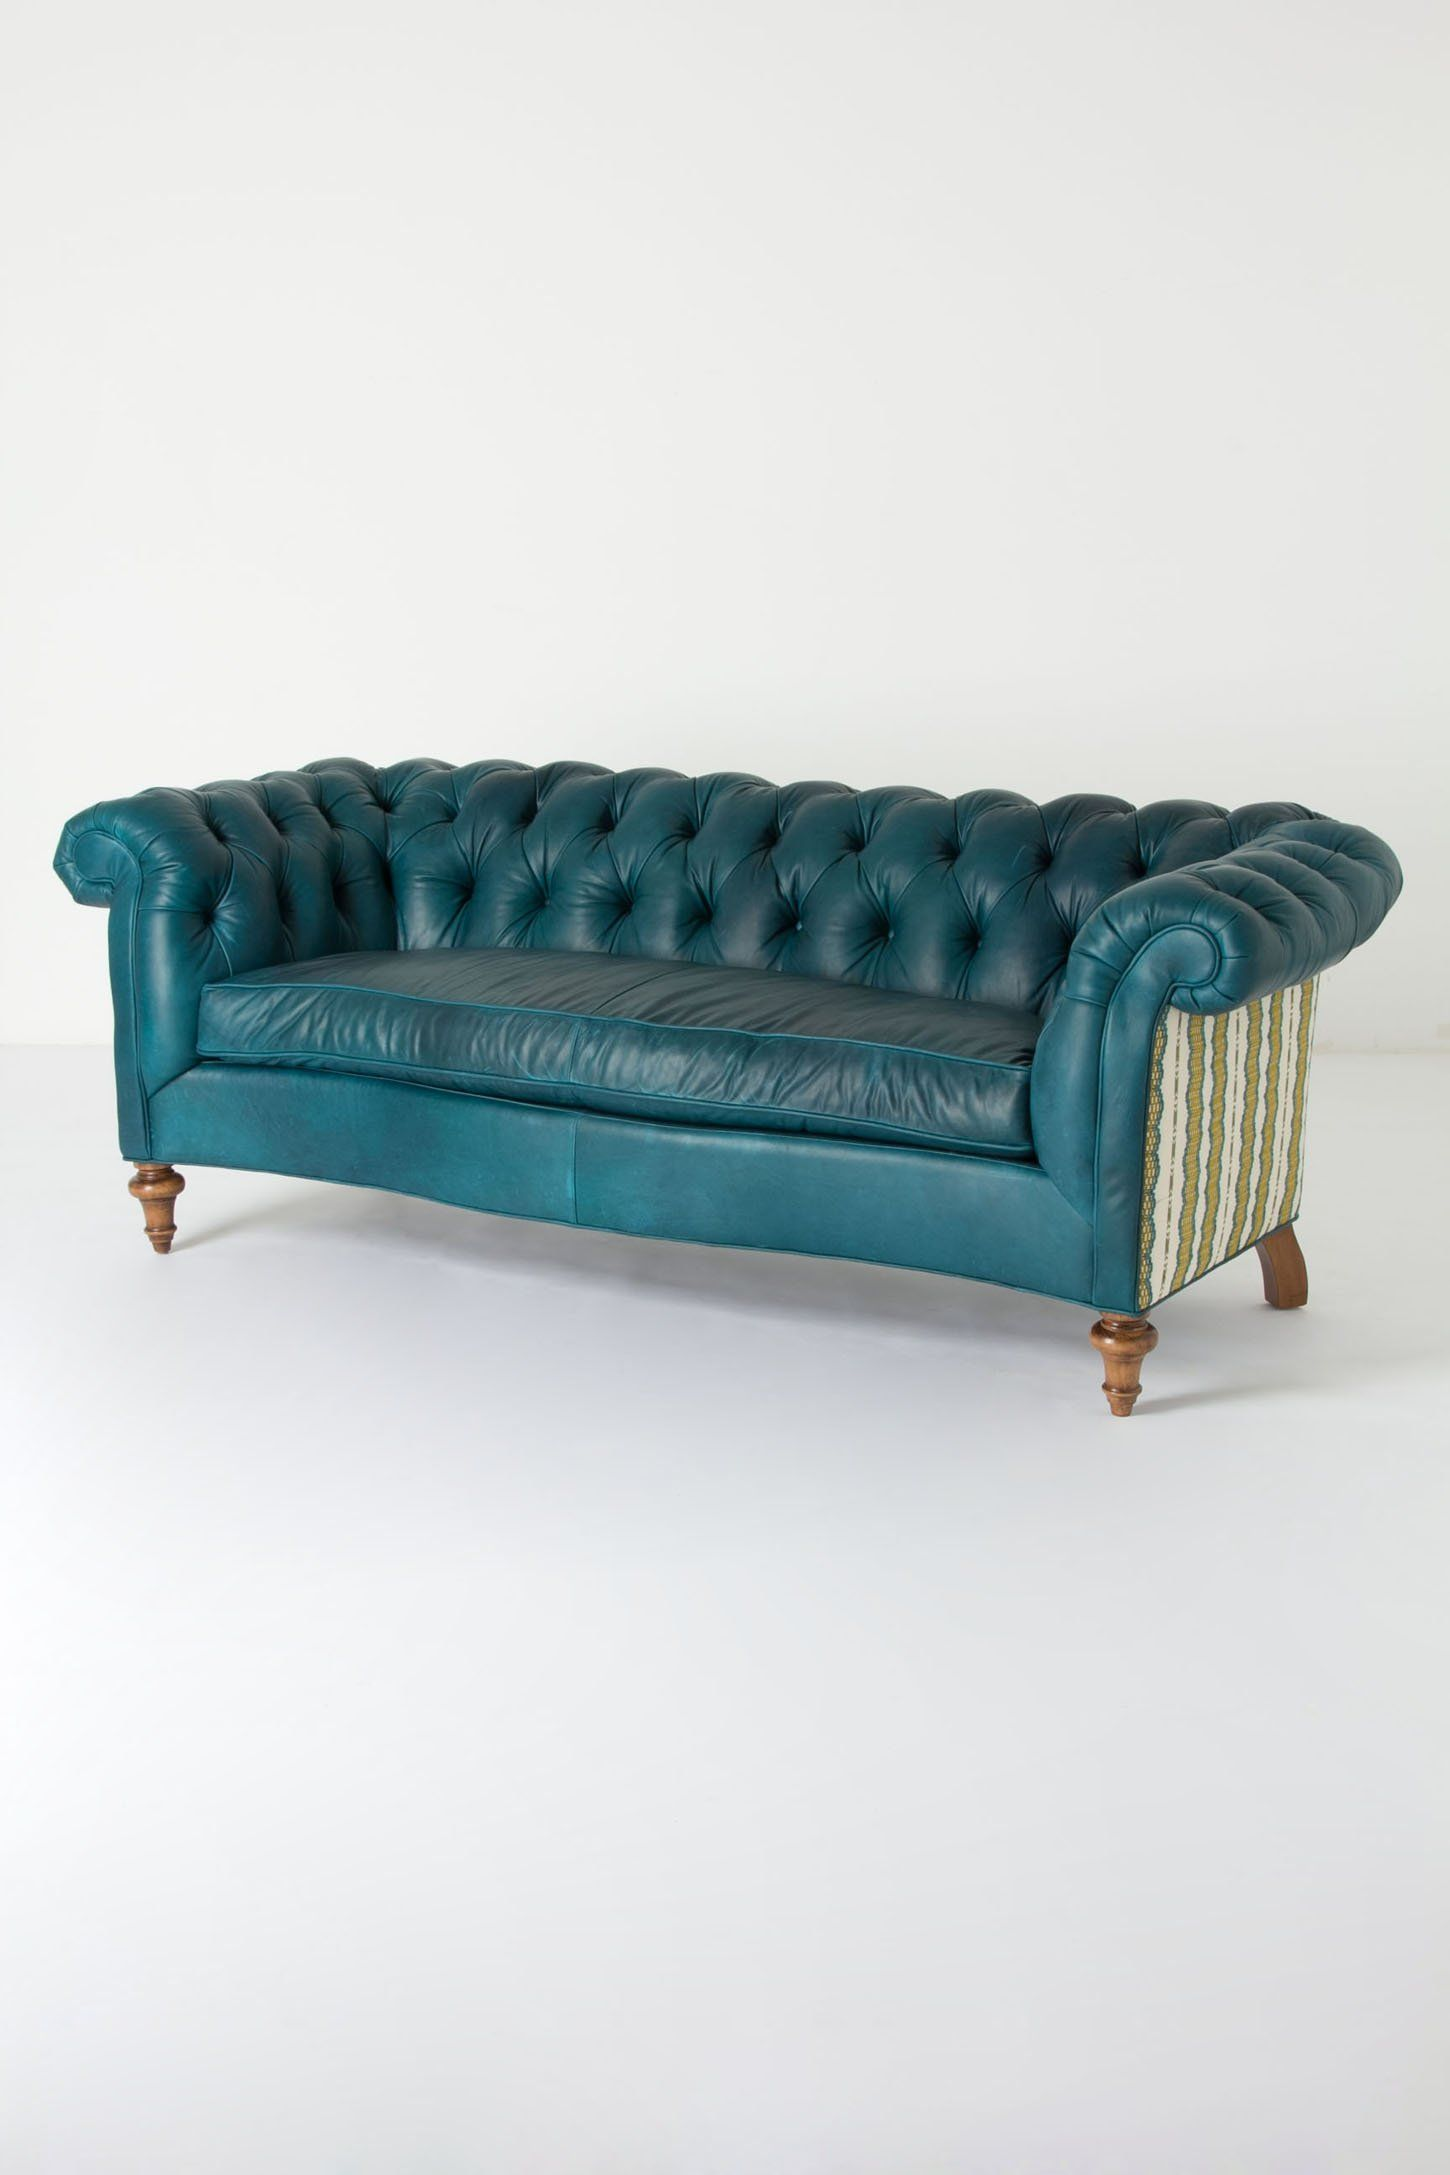 Anthropologie Sofa Restoration Hardware Maxwell Fabric Hacienda Chesterfield And